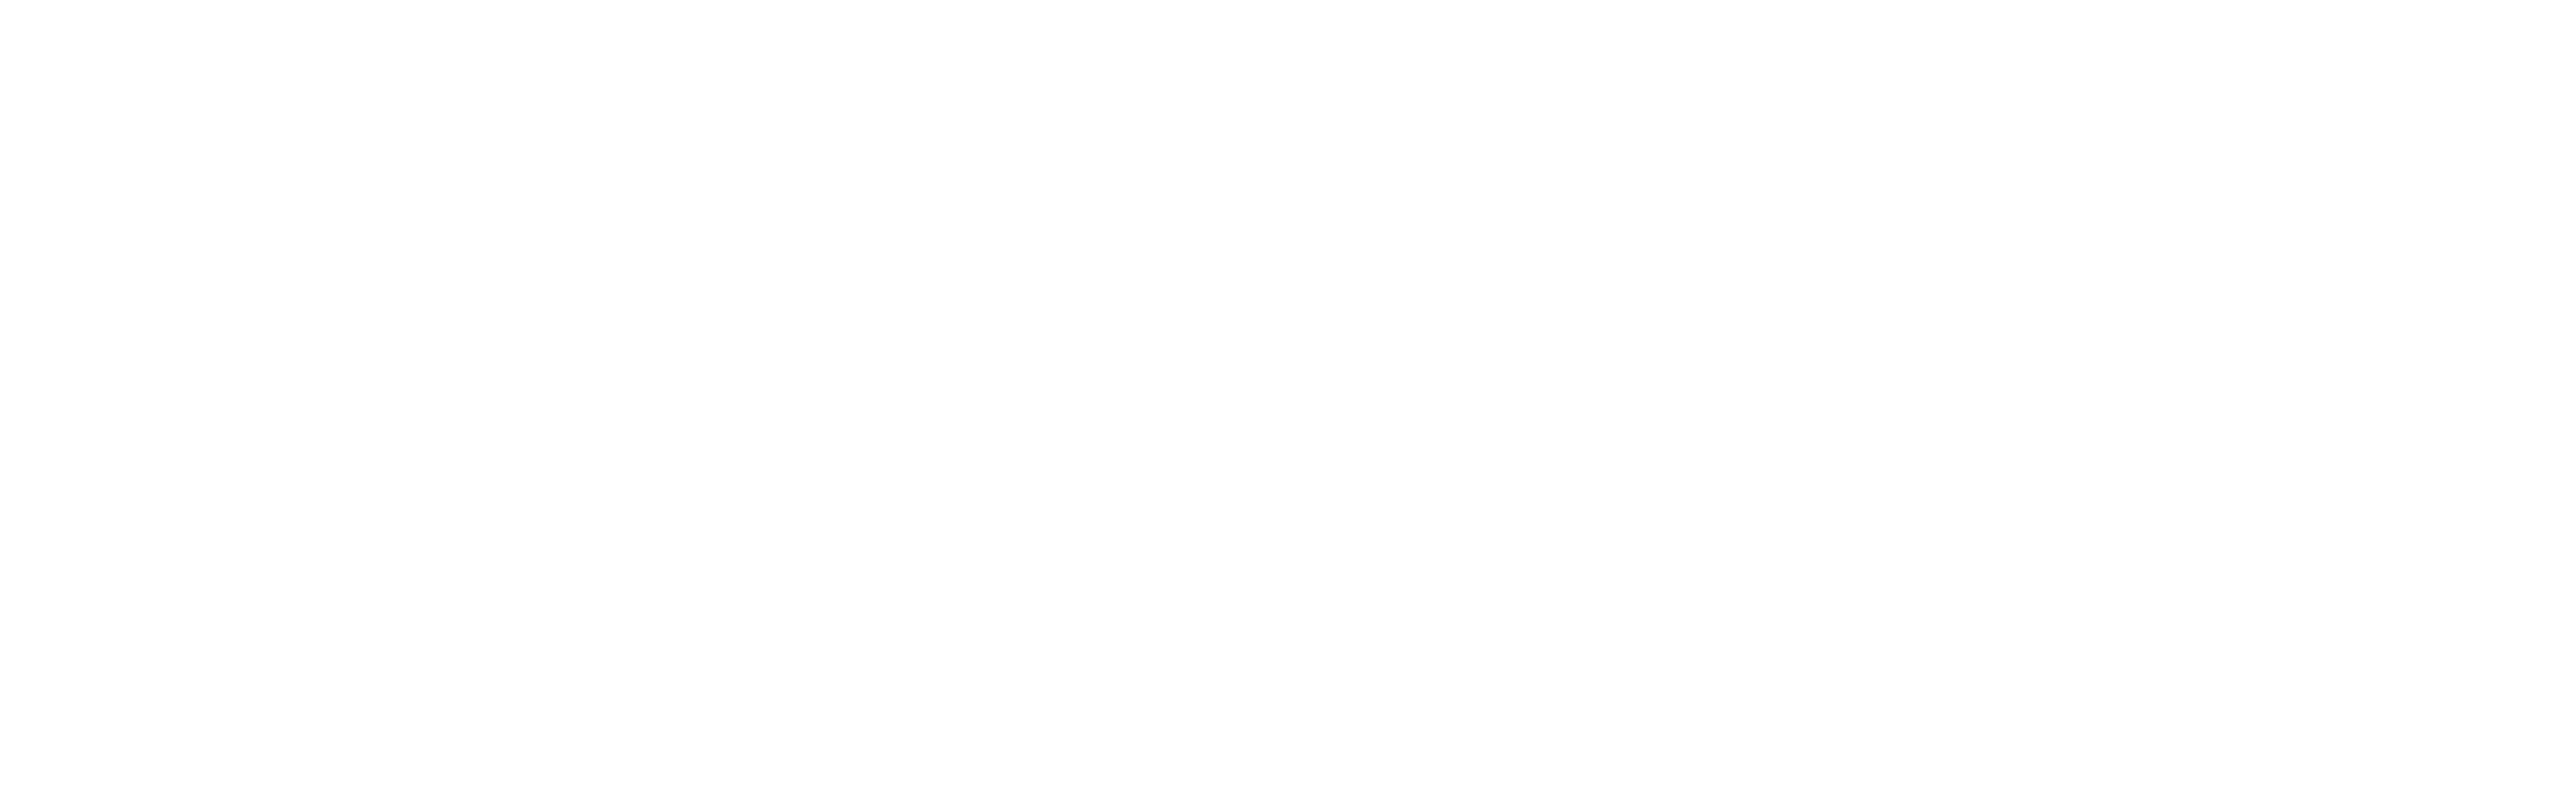 The Community Company